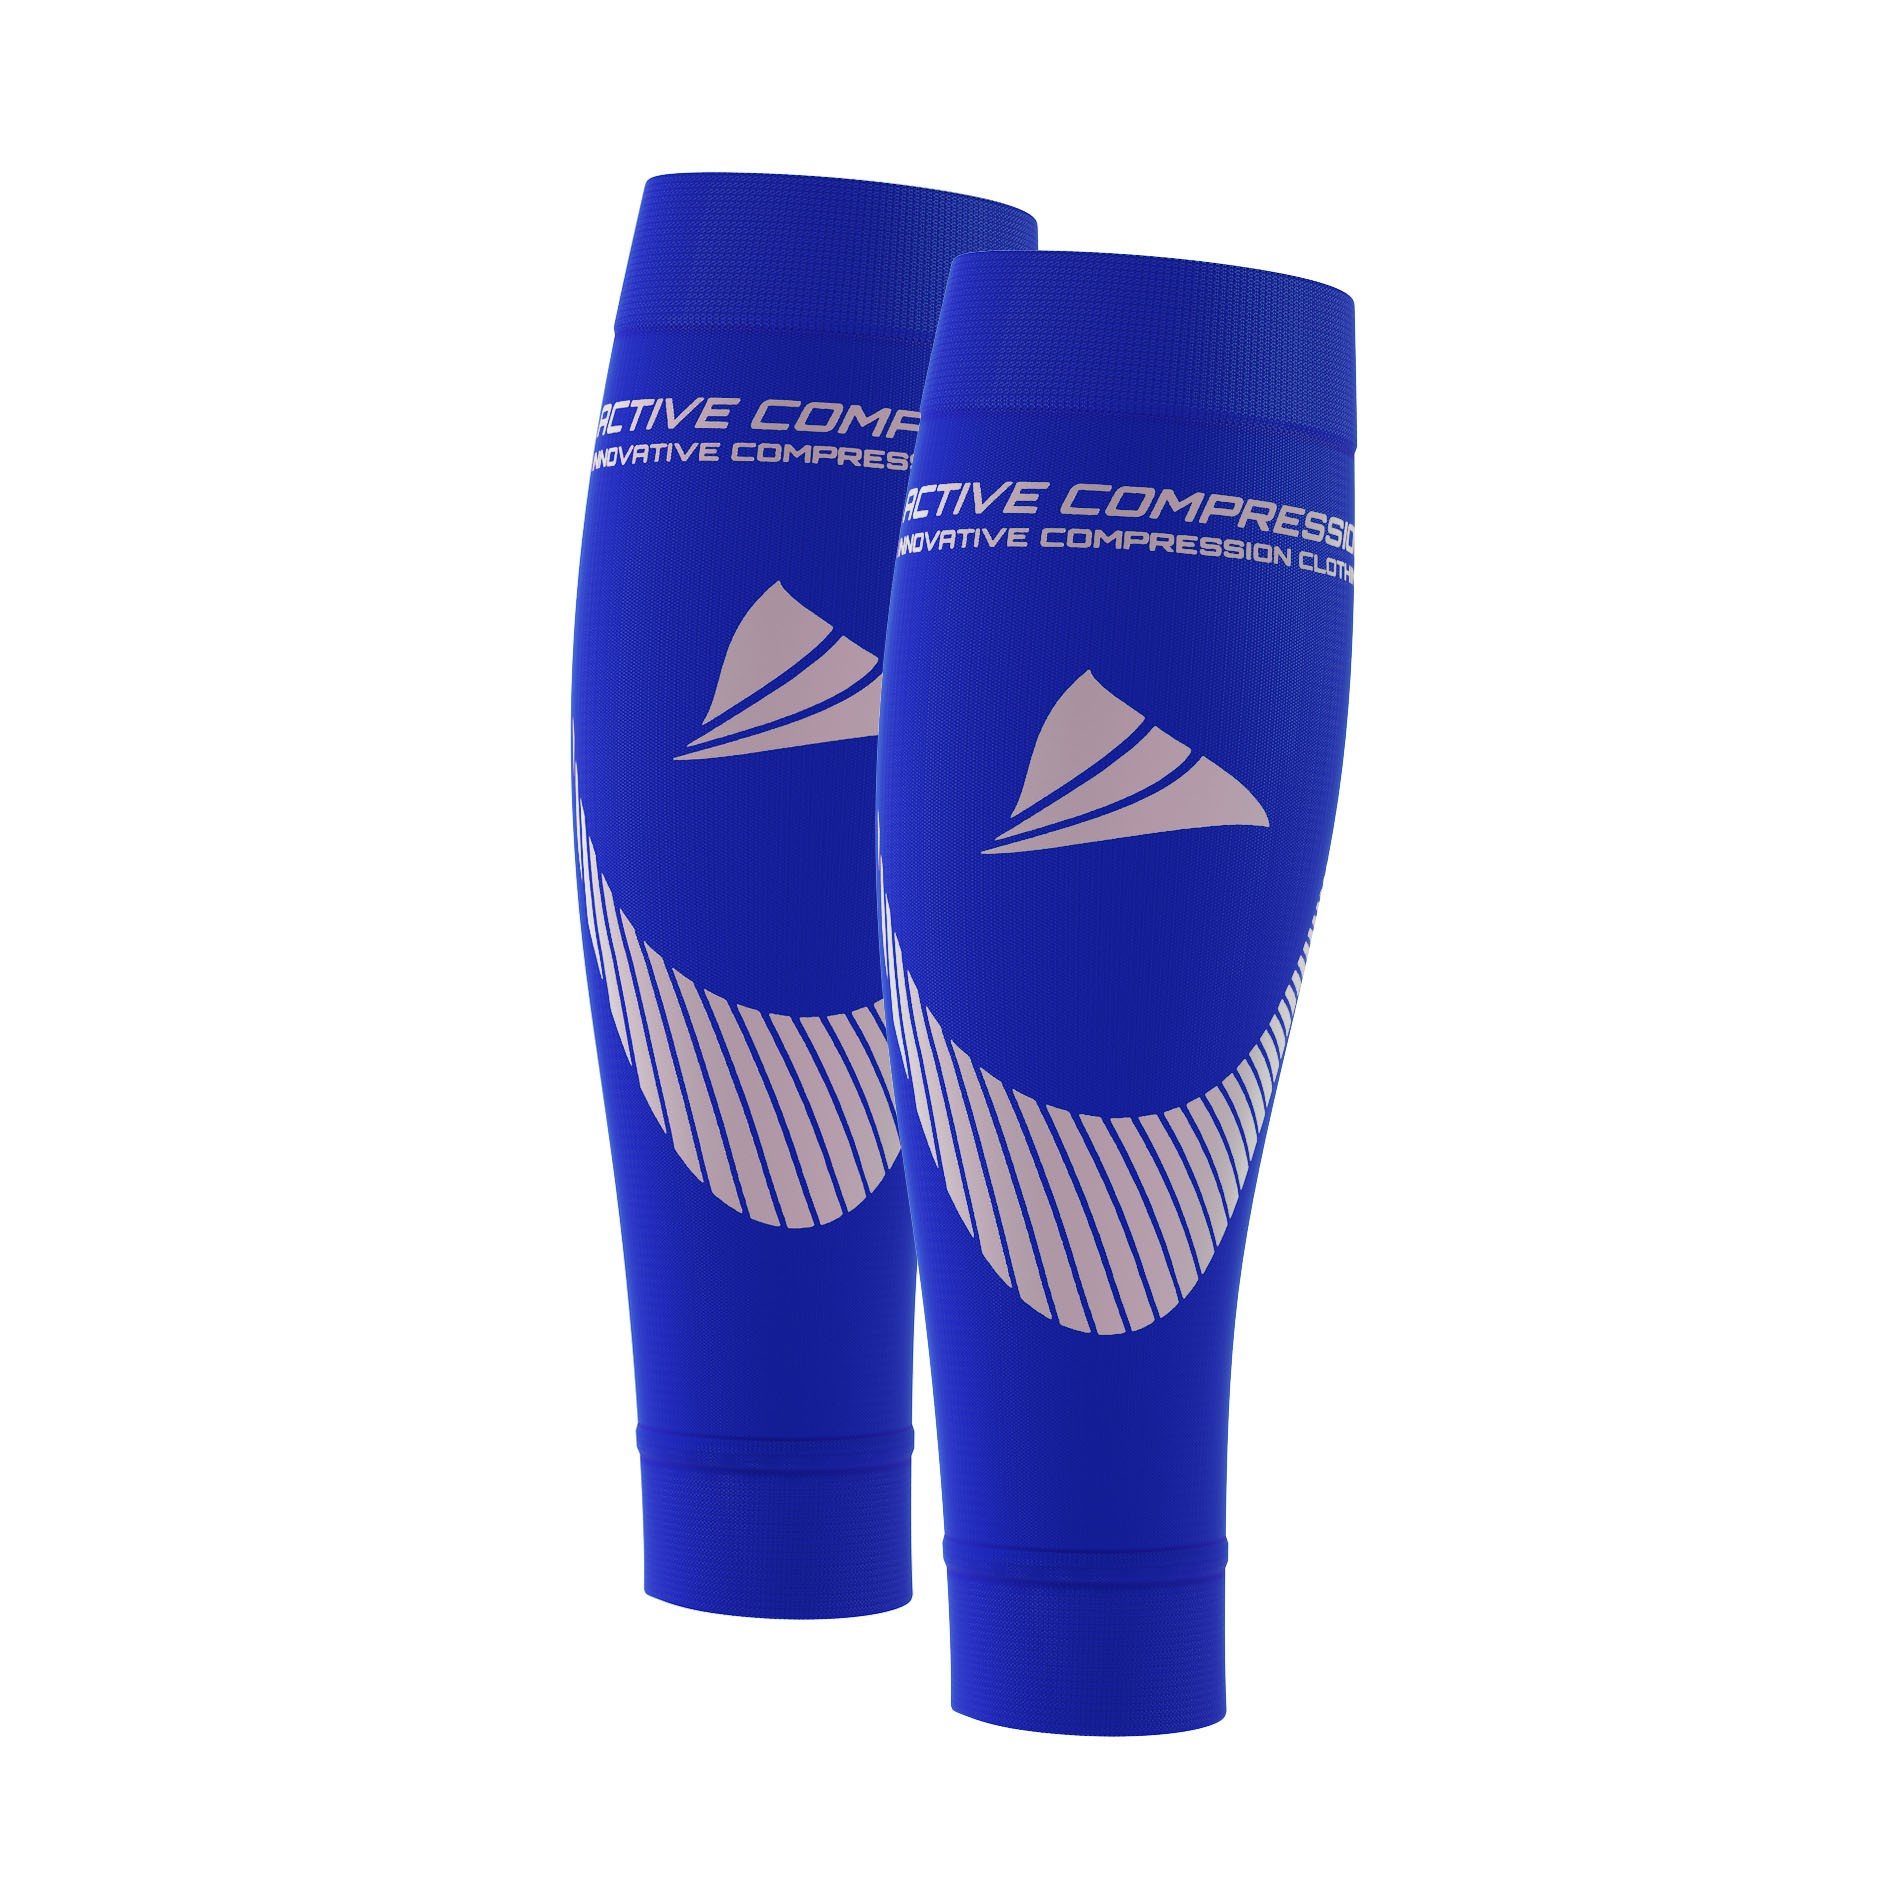 PERFORMANCE CALF SLEEVES – extra strong - blau/silber